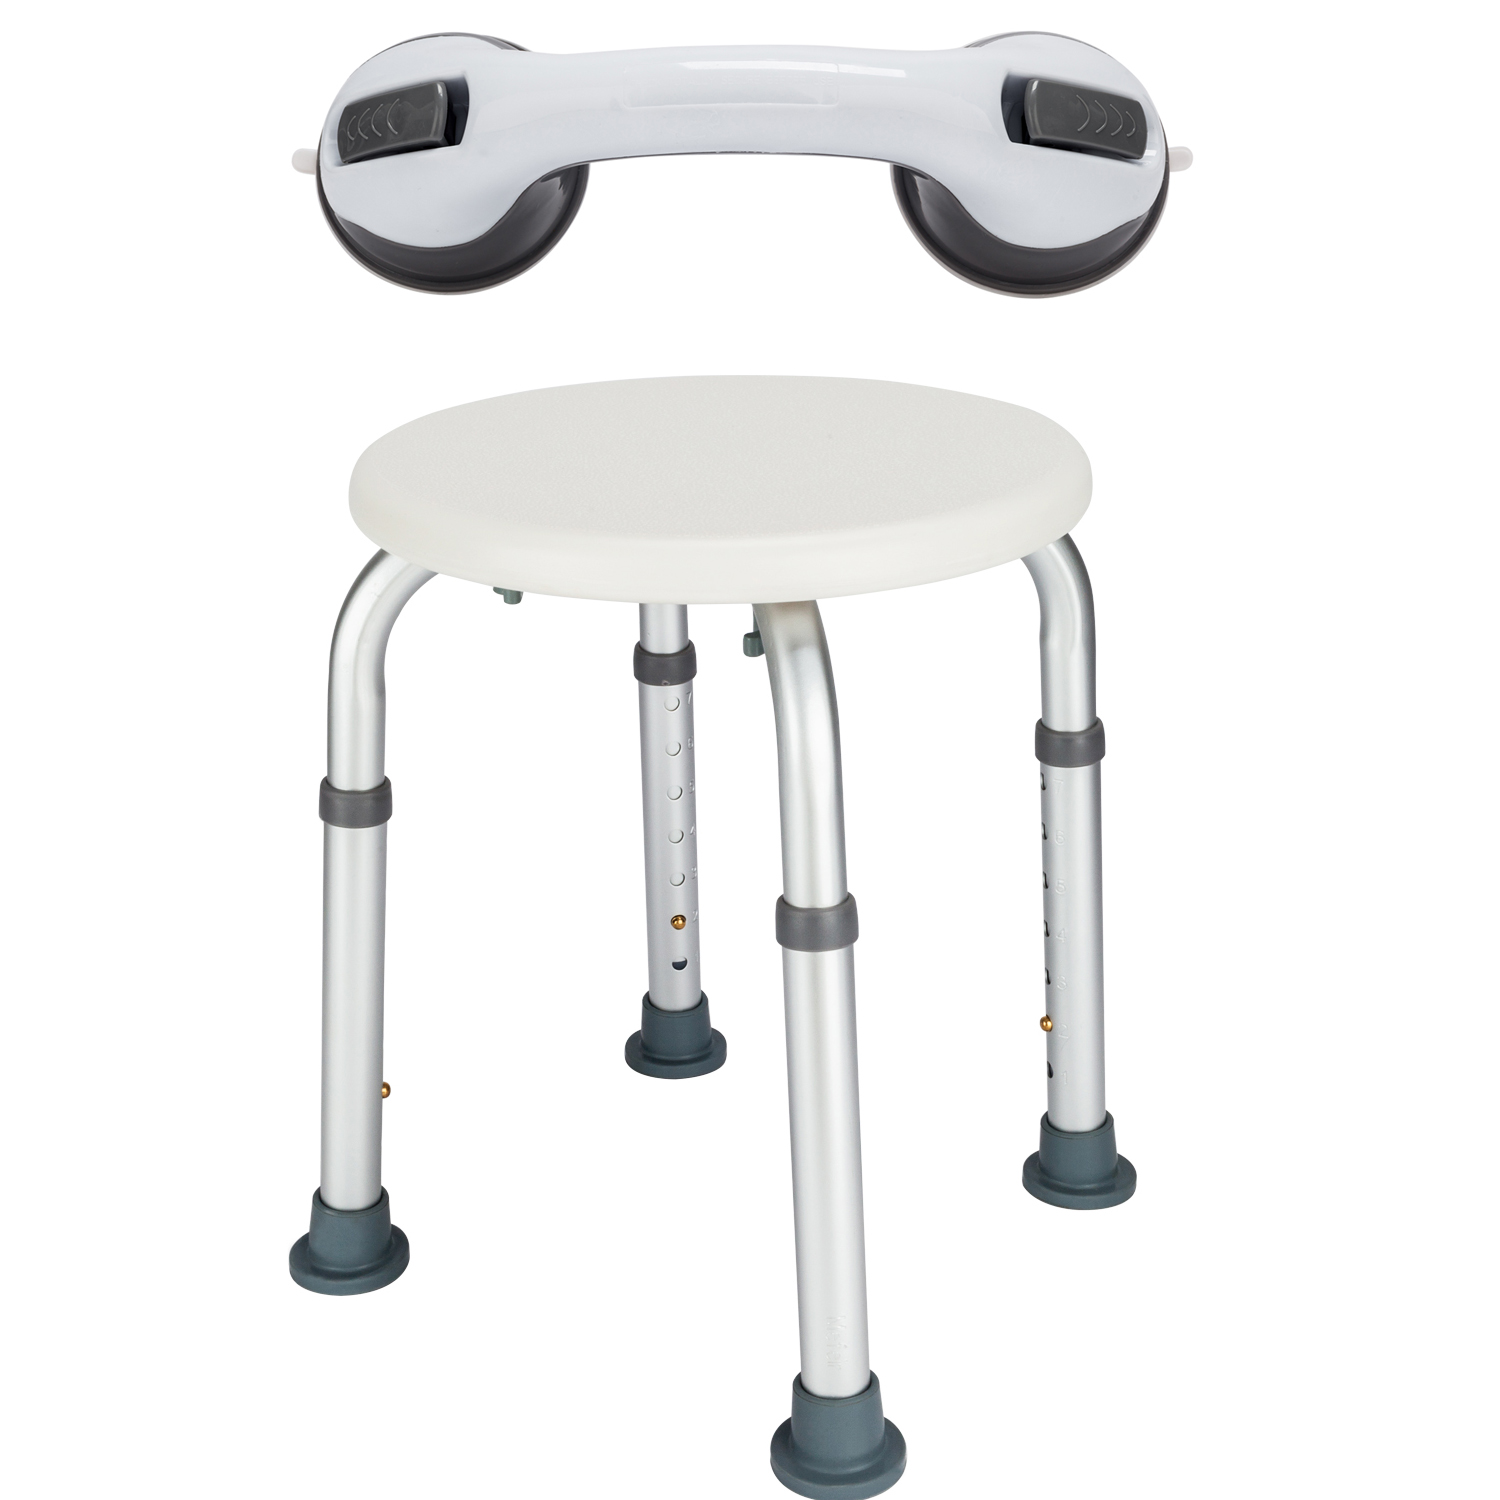 Bathtub Chairs For Elderly Zimtown Adjustable 7 Height Medical Elderly Bath Chair